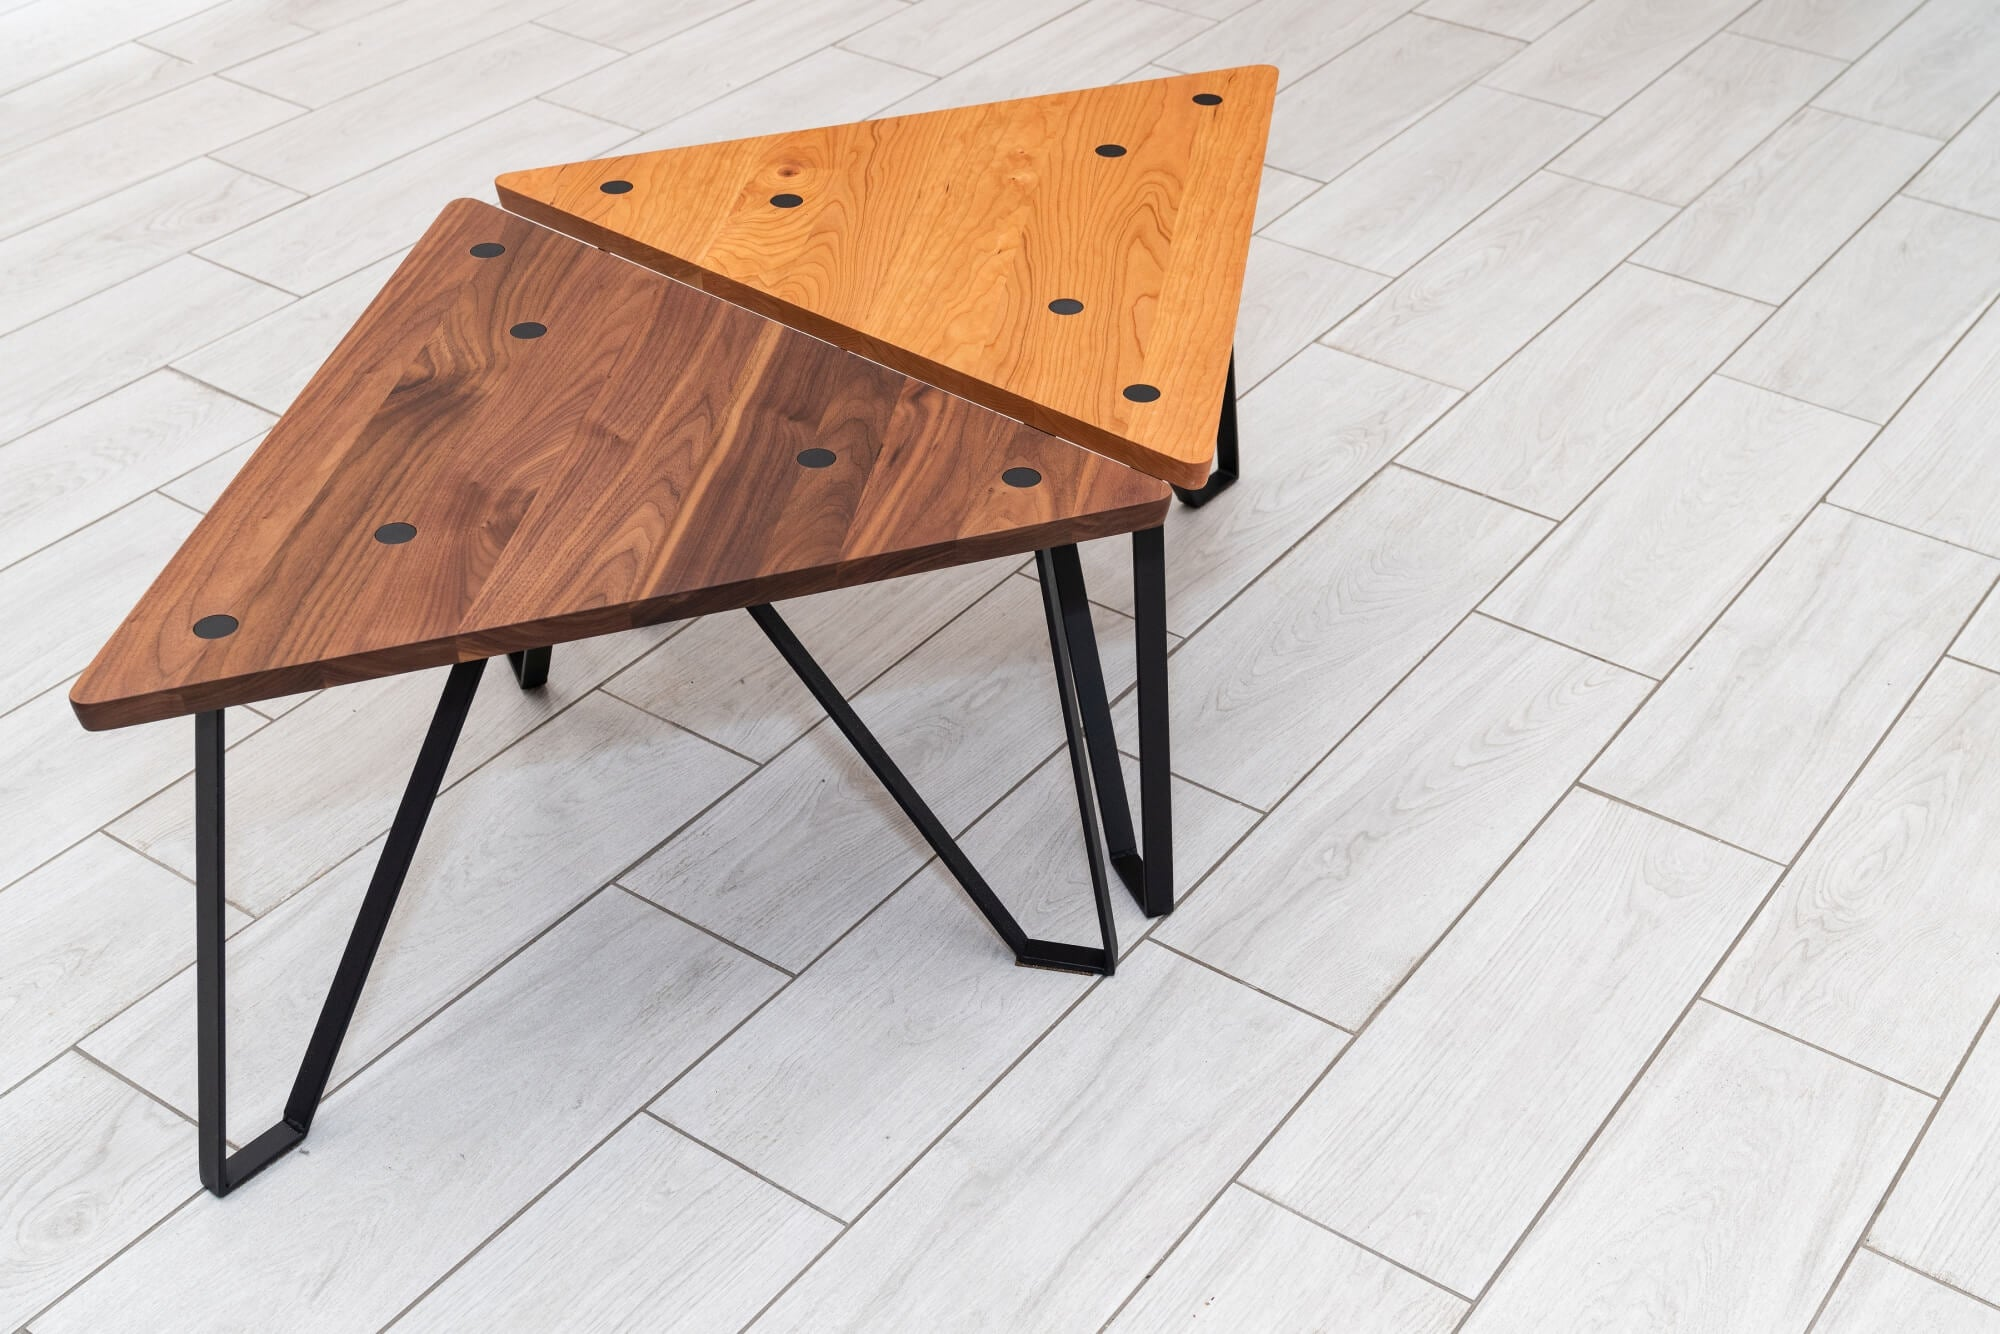 Geometric wood benches.